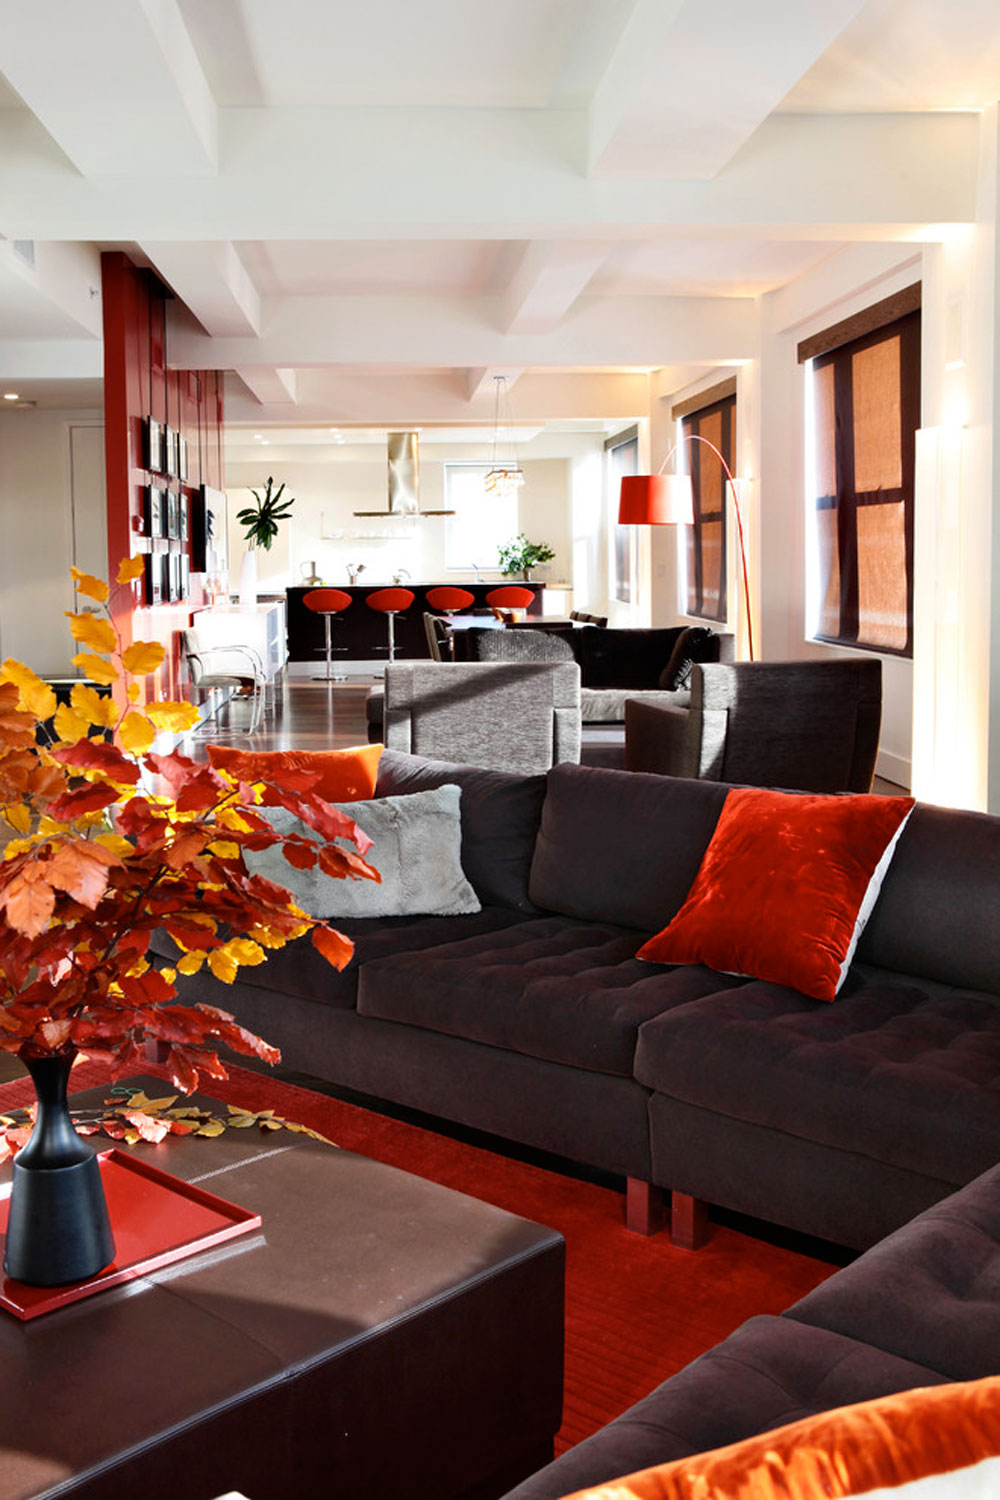 Meaning-of-the-red-color-in-interior-design-and-decoration-ideas-6 Meaning of the red color in interior design and decoration-ideas